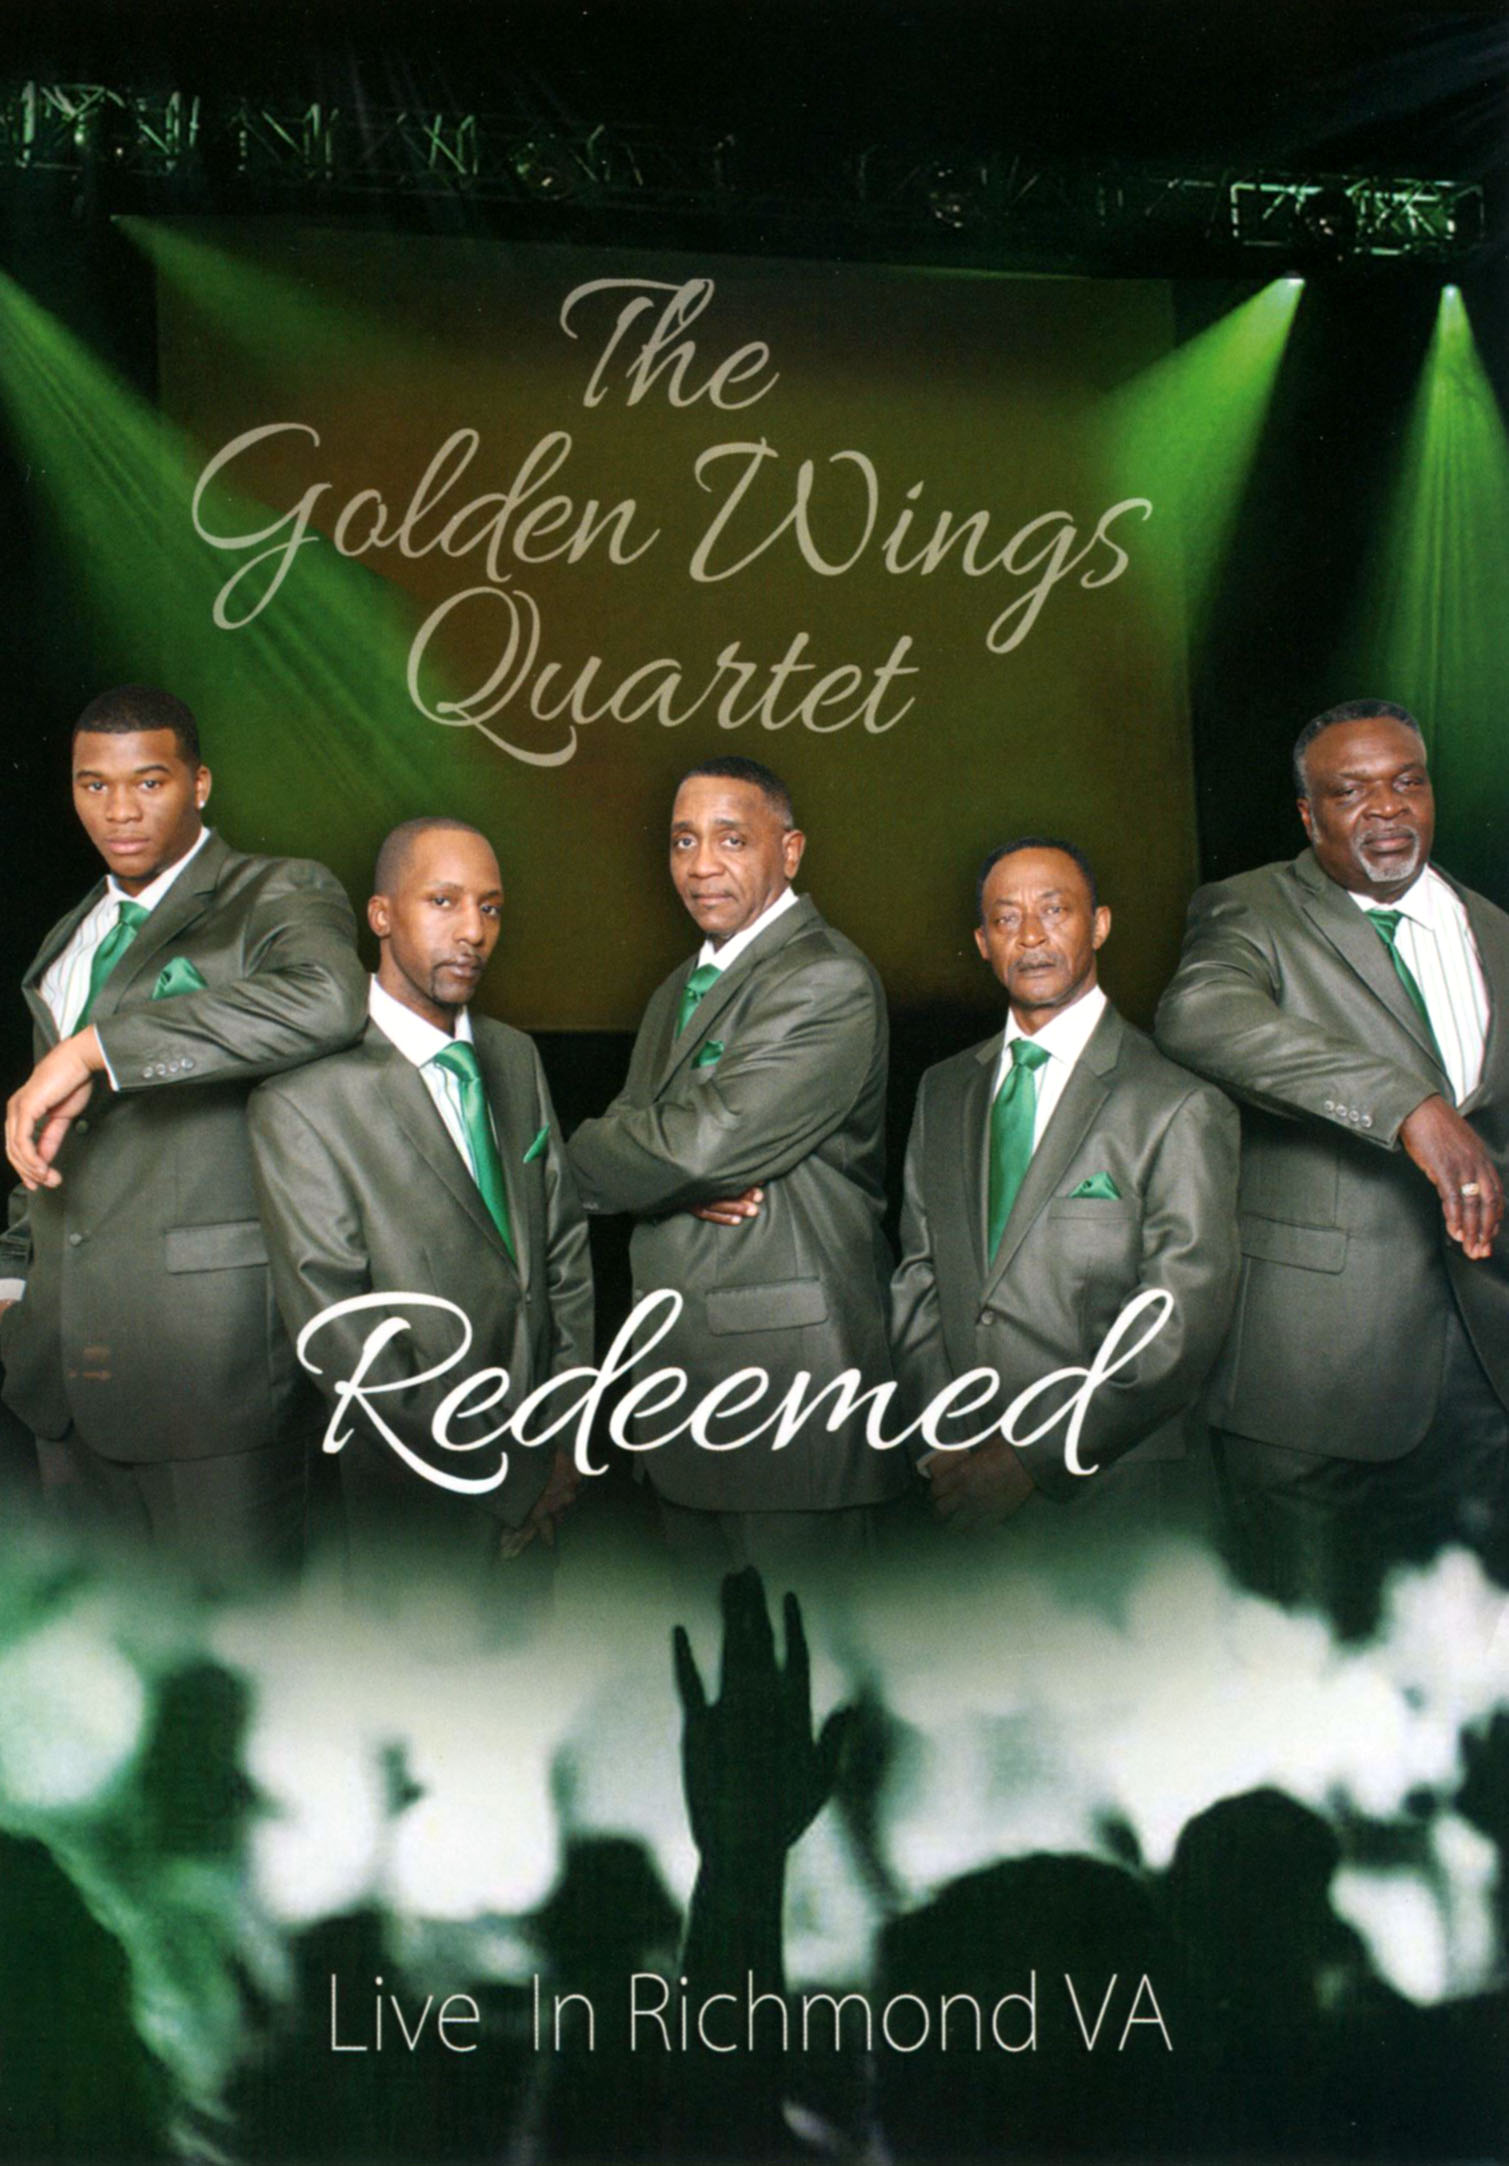 The Golden Wings Quartet: Redeemed - Live in Richmond, VA